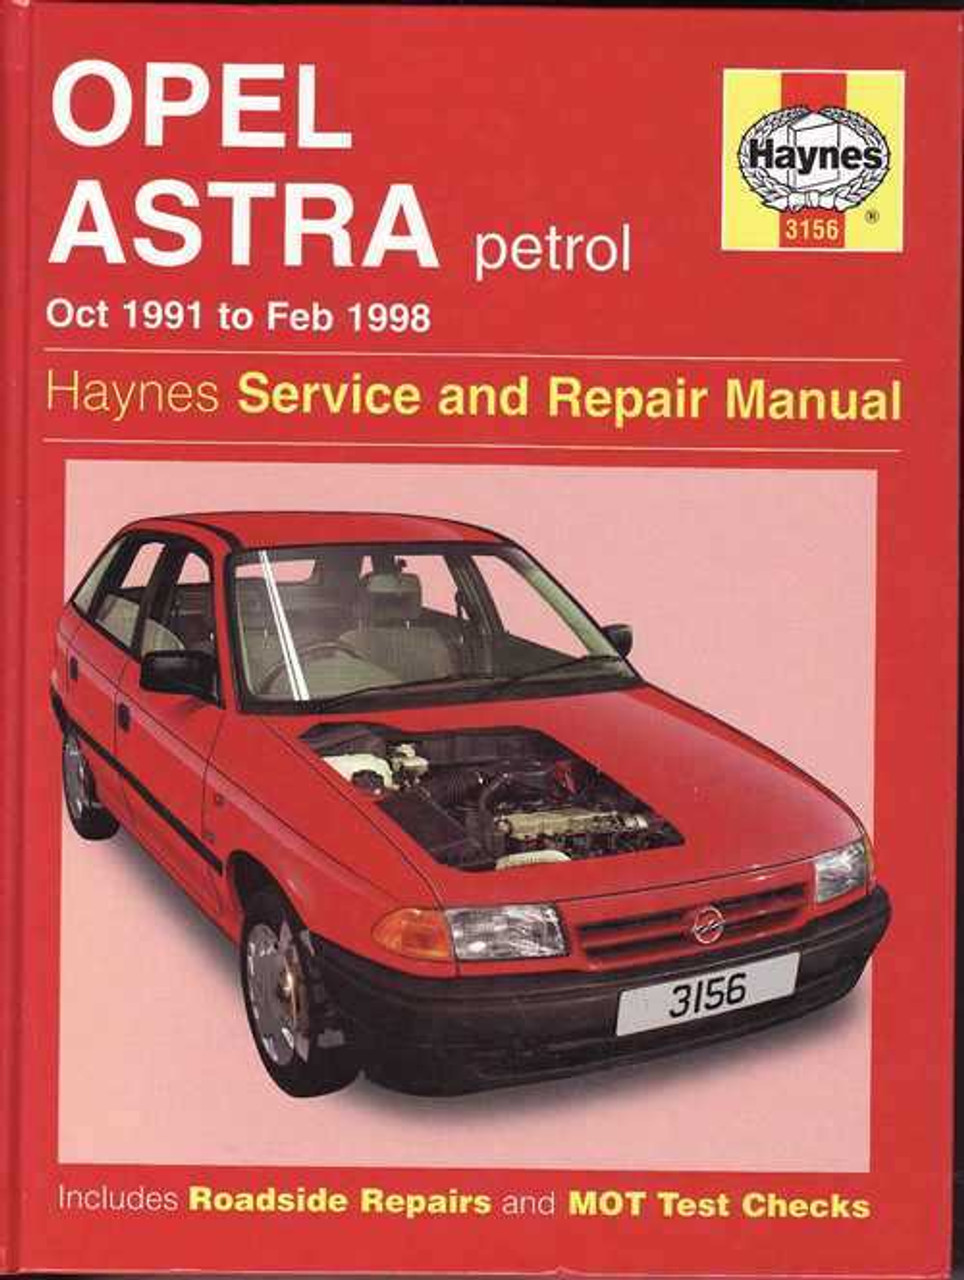 Holden astra opel petrol 1991 1998 workshop manual cheapraybanclubmaster Image collections